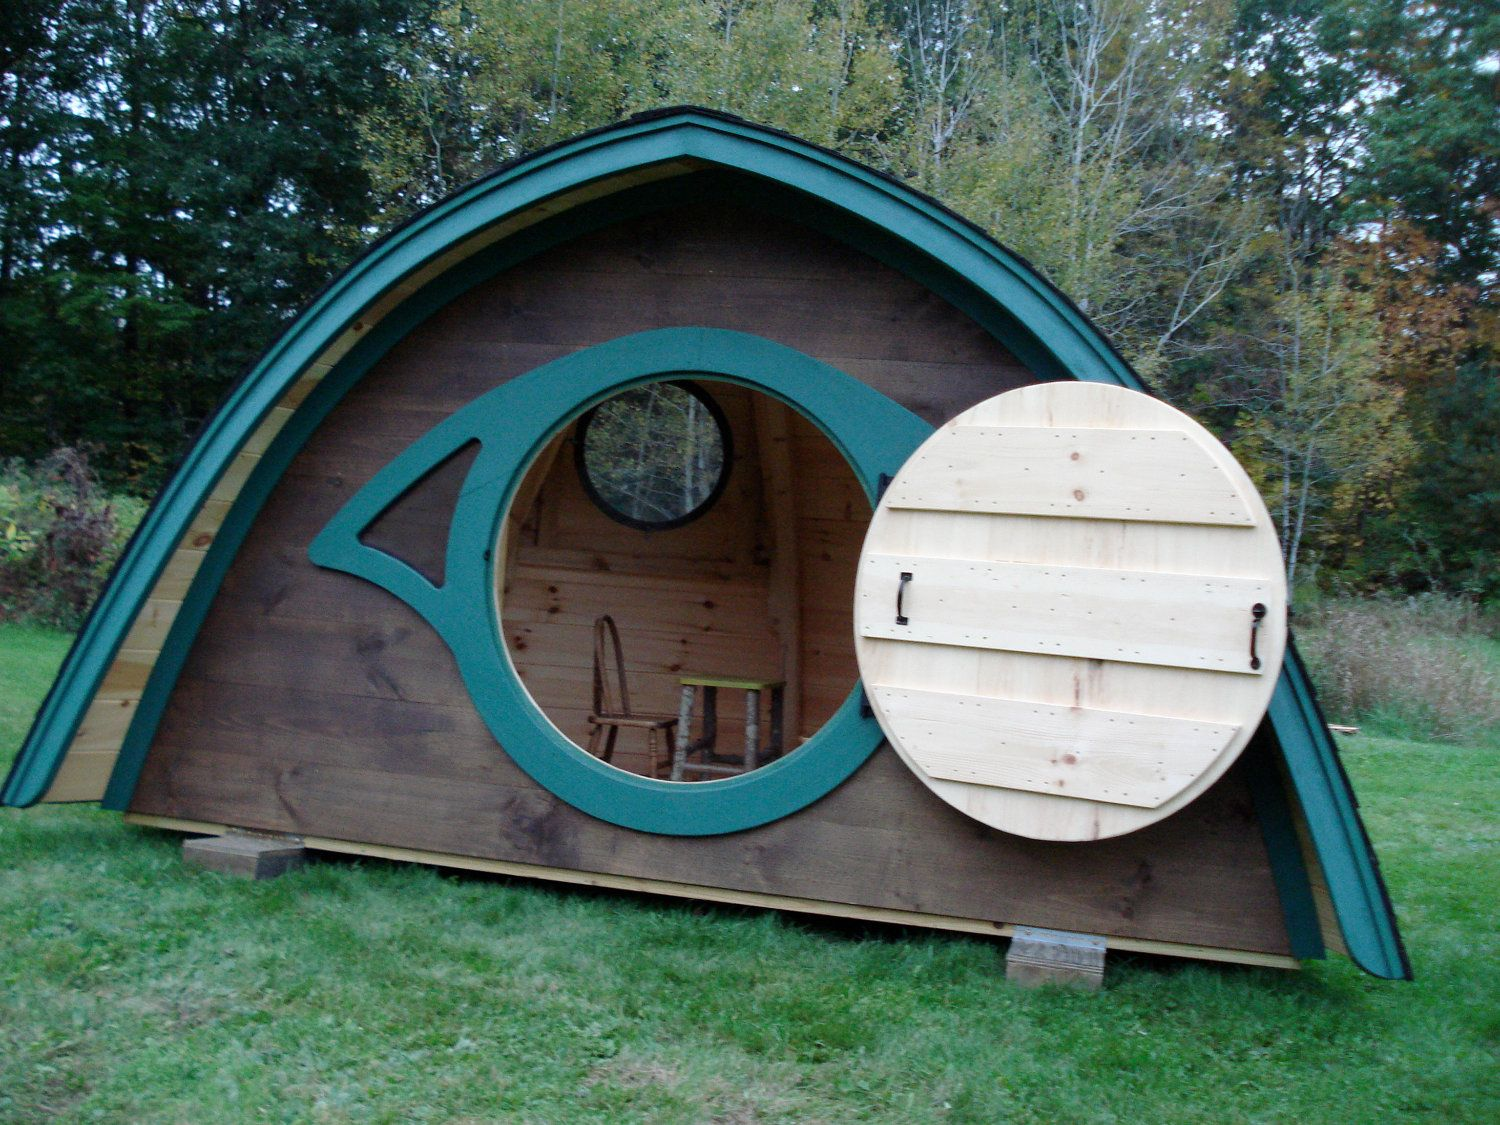 Attractive and spacious children's playhouse in the style of a Hobbit Hole, with a dome shaped front, curved walls, windows on either side of a round front door and a dormer with a round window. Provides a perfectly cozy enclosed space that kids will love to call their own.